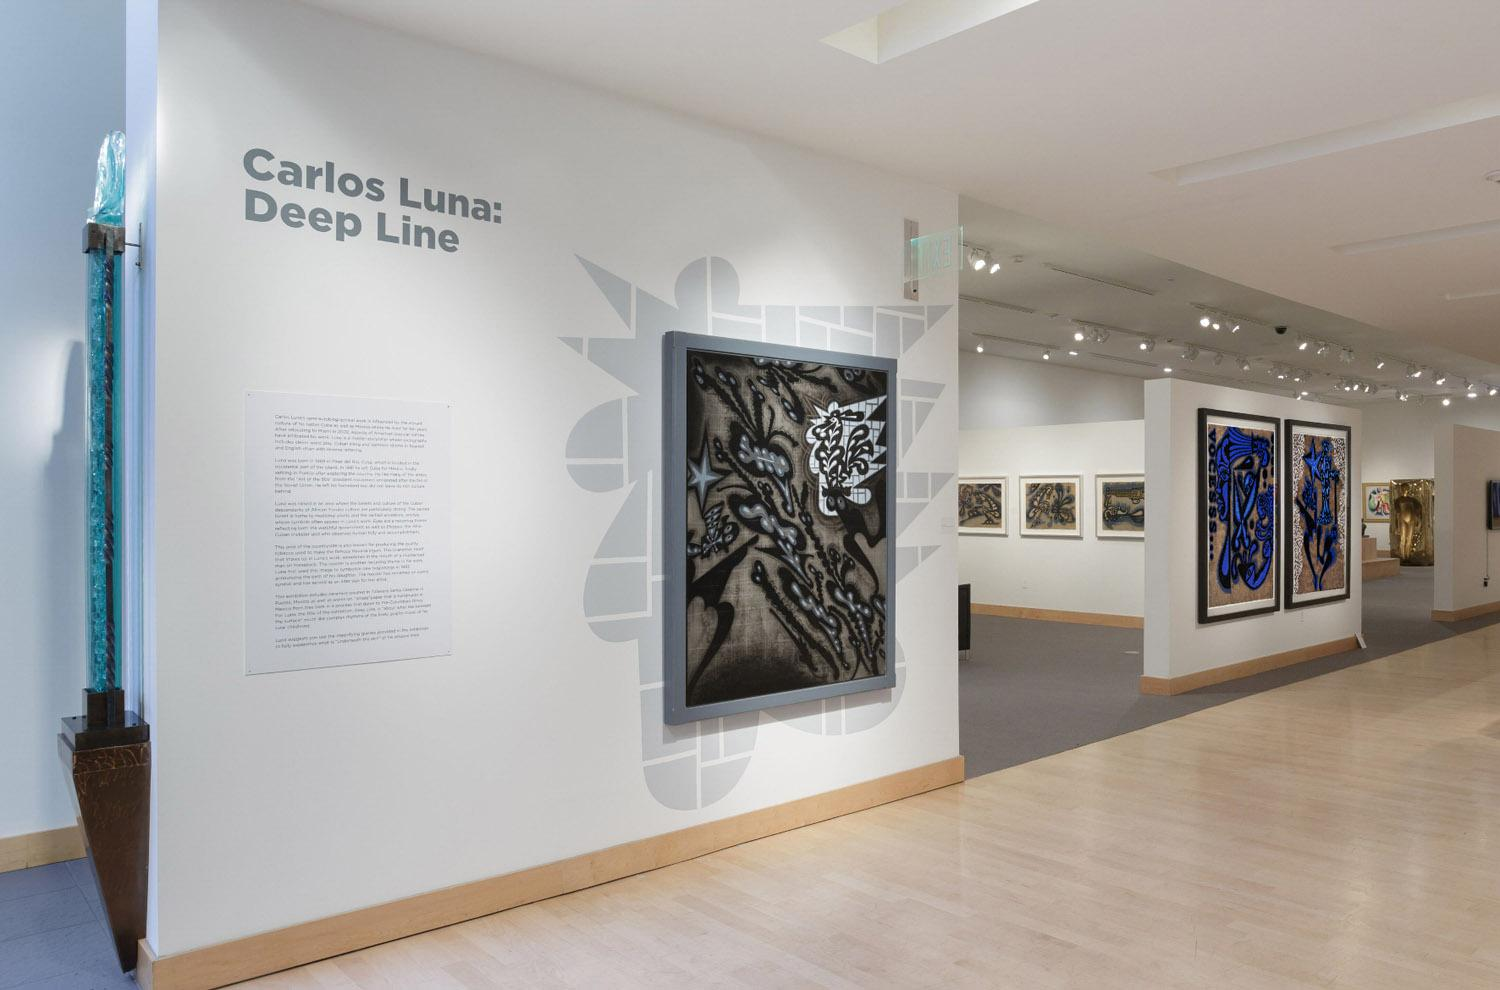 Deep Line, Drawings by Carlos Luna; Boca Raton Museum of Art, Boca Raton, FL, 2017